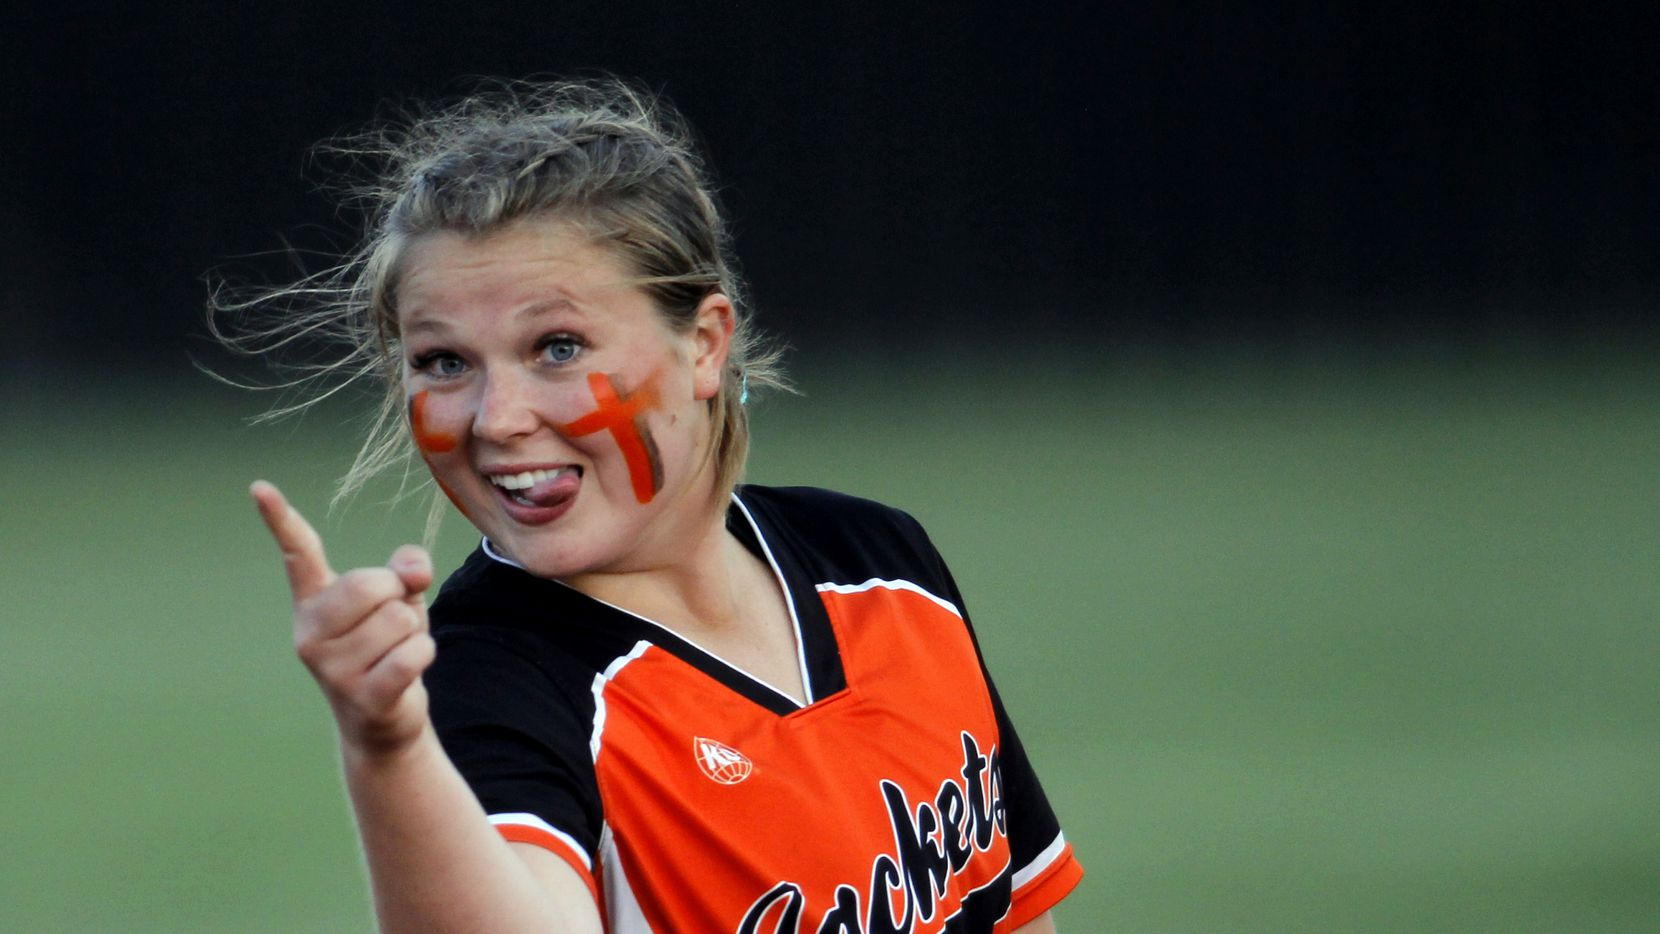 Rockwall first baseman  Elizabeth Schaefer (21) gestures to a teammate after making a put-out during the bottom of the 2nd inning of play against Mansfield. The two teams played their Game 2 of a best-of-3 Class 6A area round playoff softball game at Mansfield High School in Mansfield on May 7 2021.